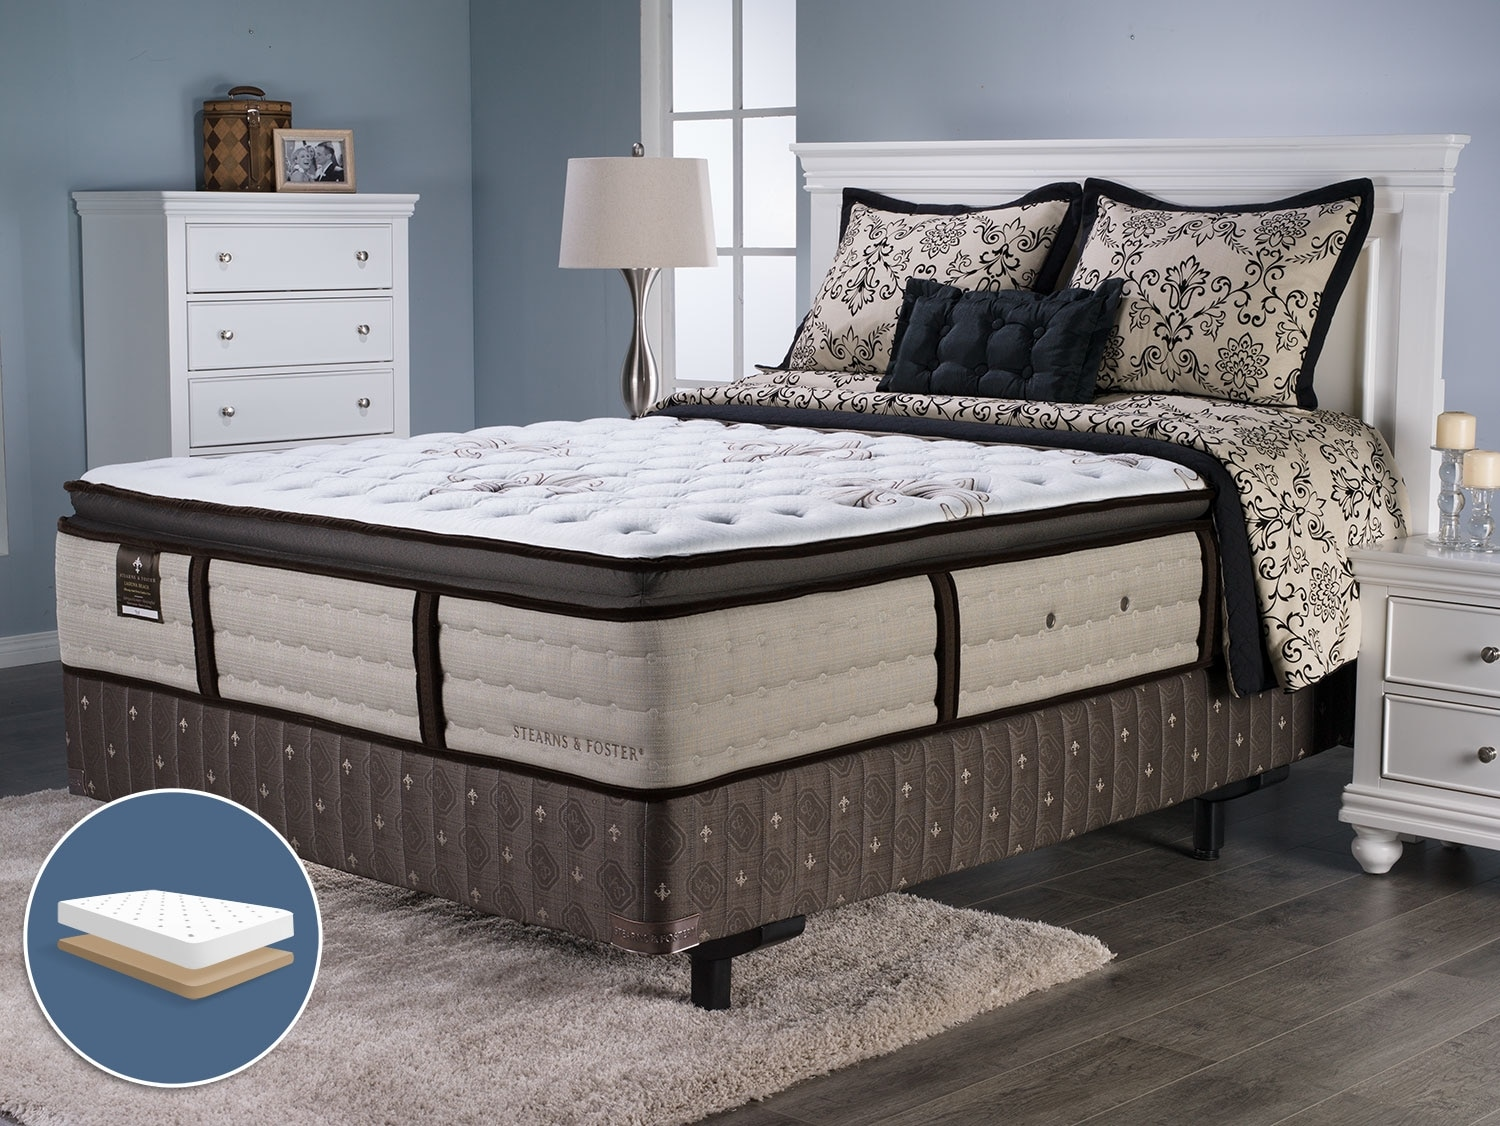 Mattresses and Bedding - Stearns and Foster Laguna Beach Pillow-Top King Low-Profile Mattress Set